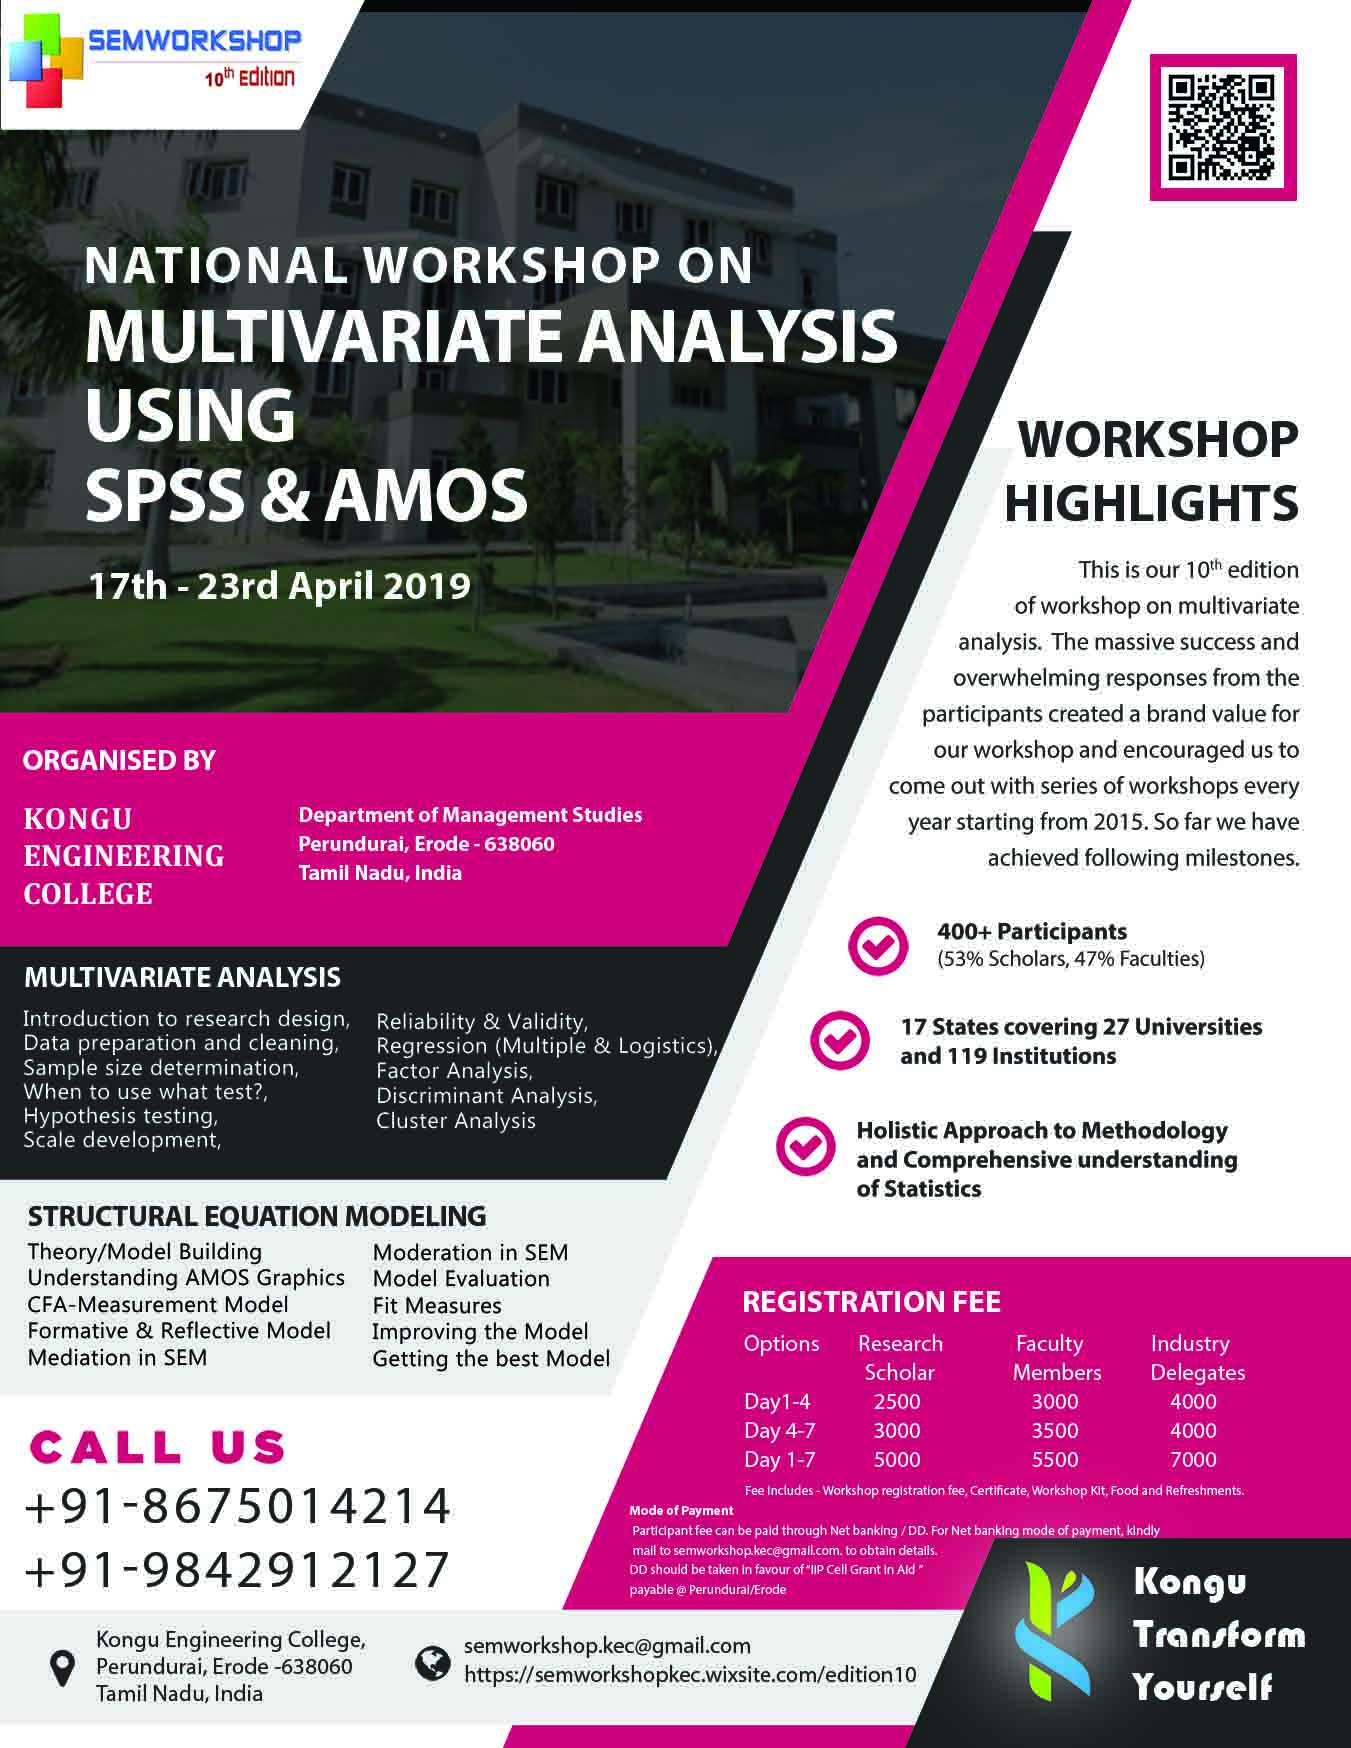 Workshop on Multivariate Analysis Using SPSS and AMOS 2019, Kongu